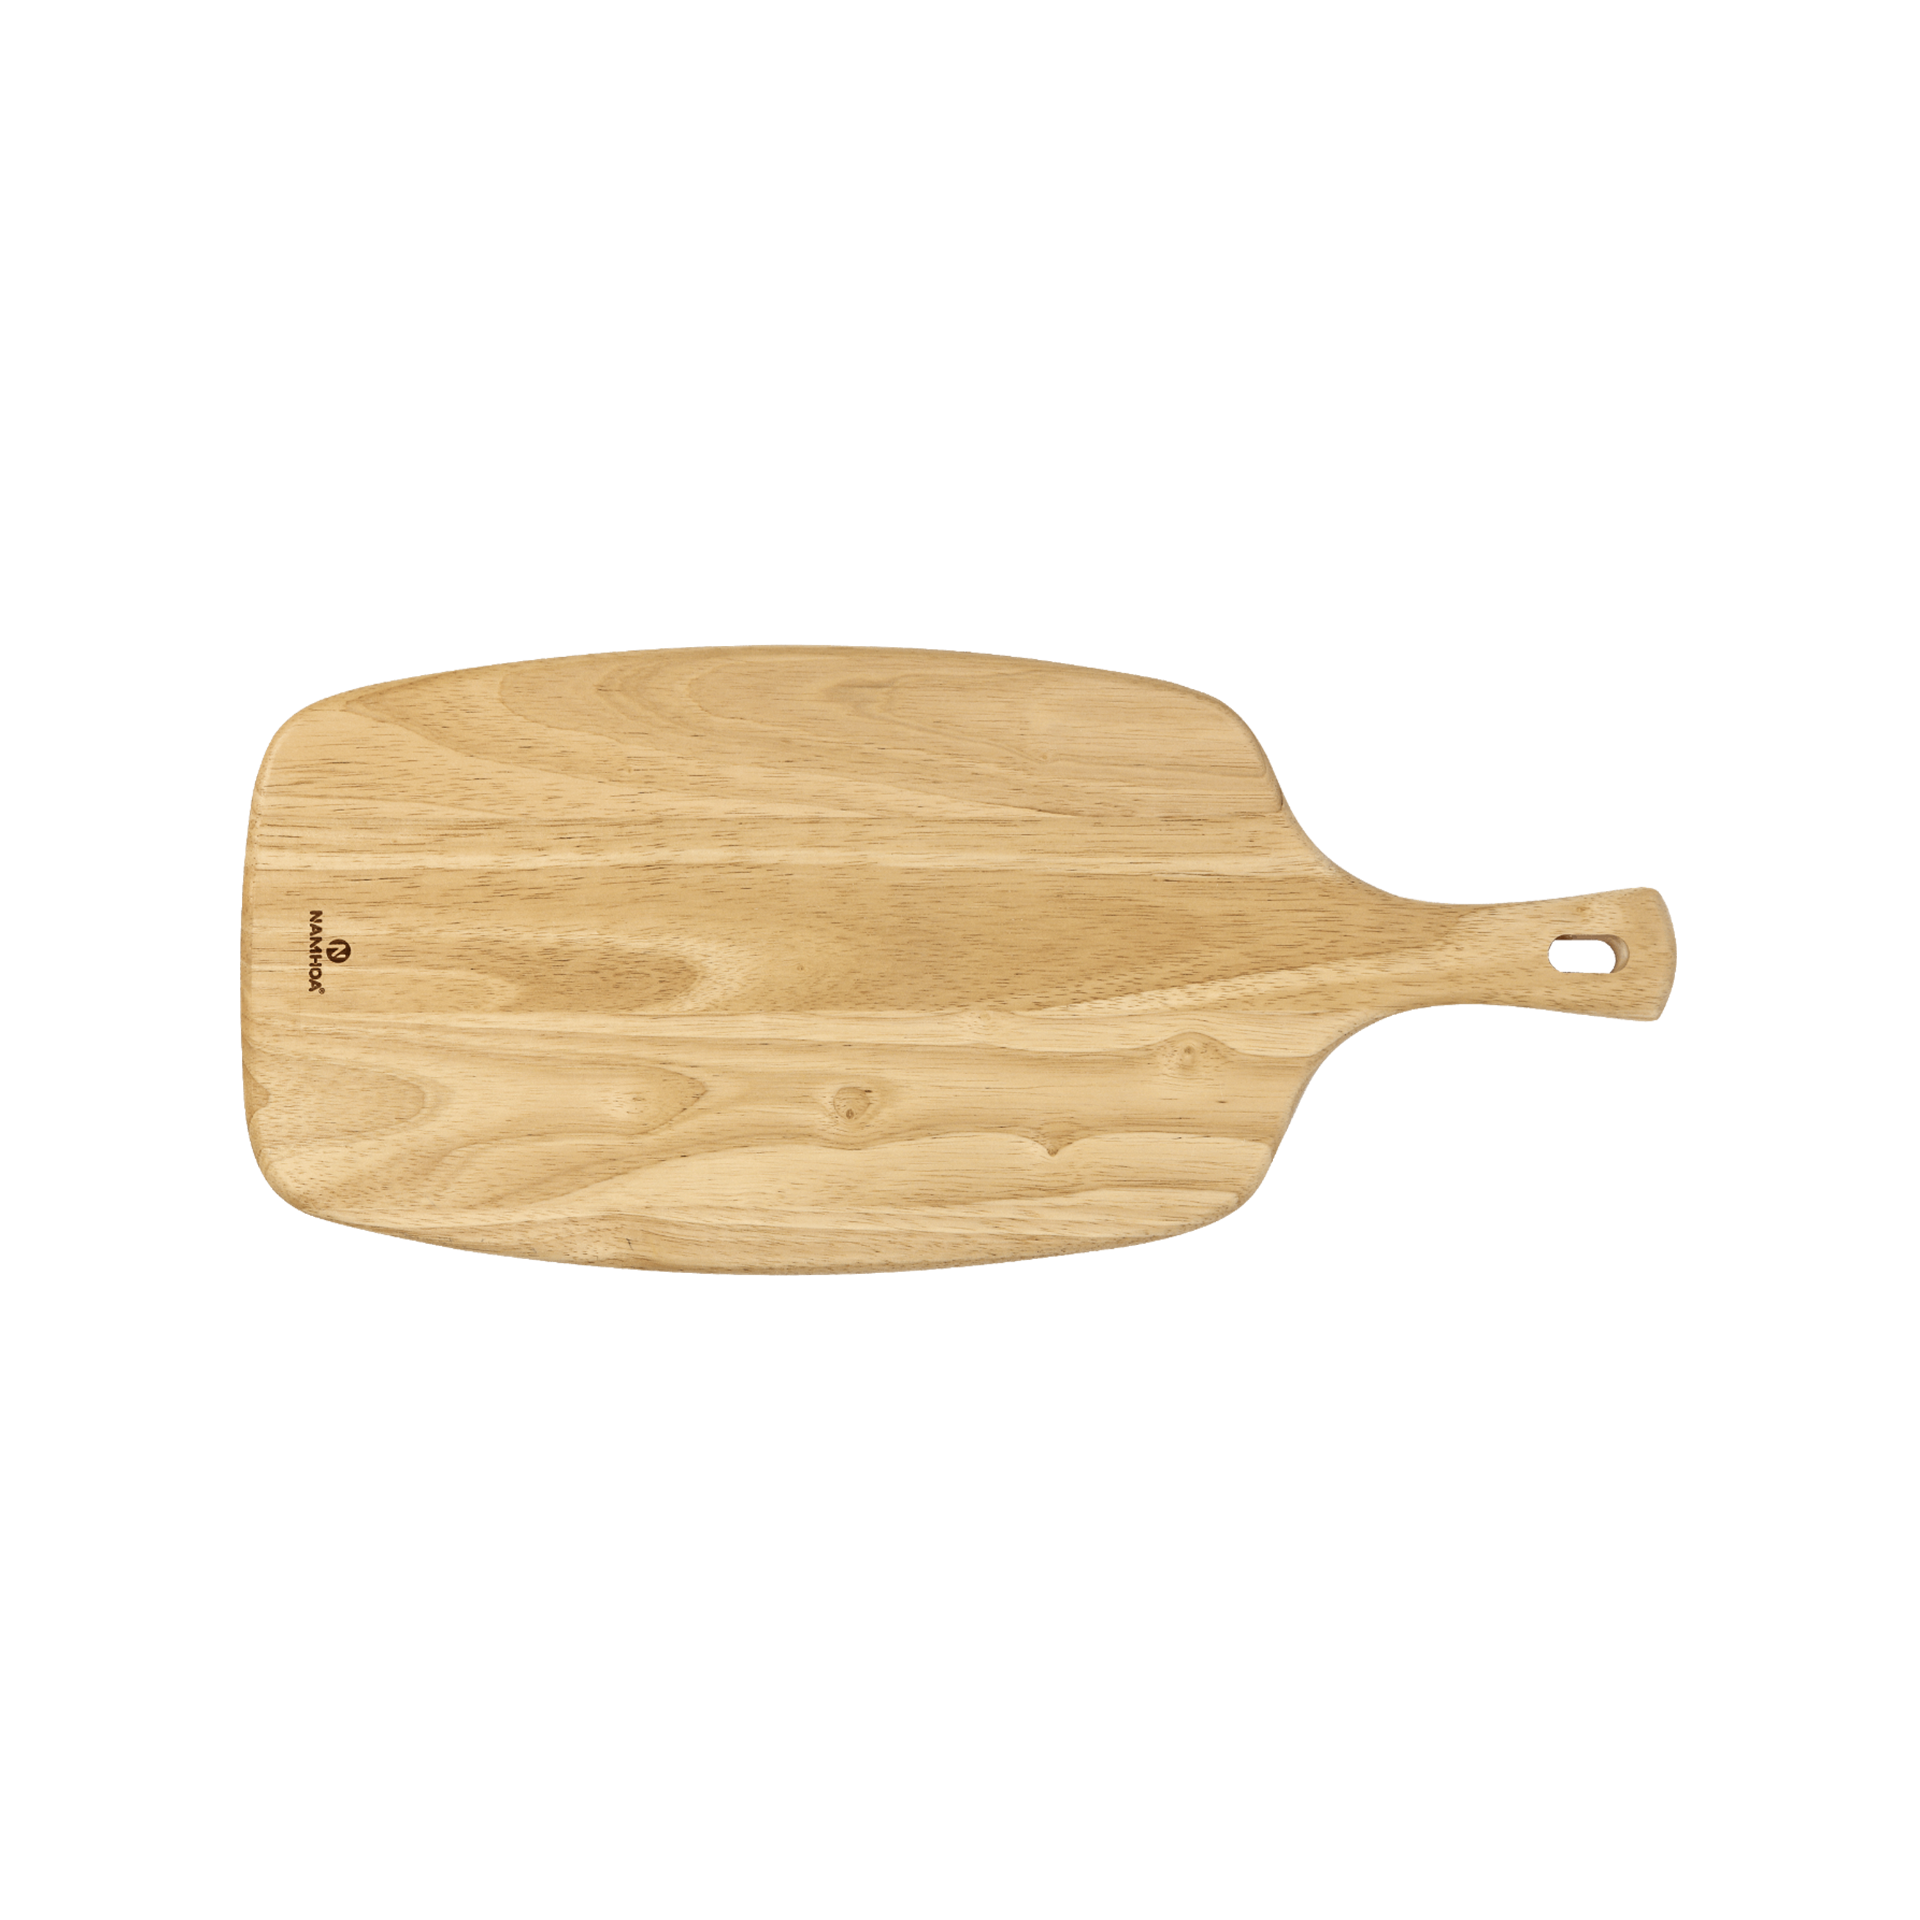 Small Paddle shape cutting board